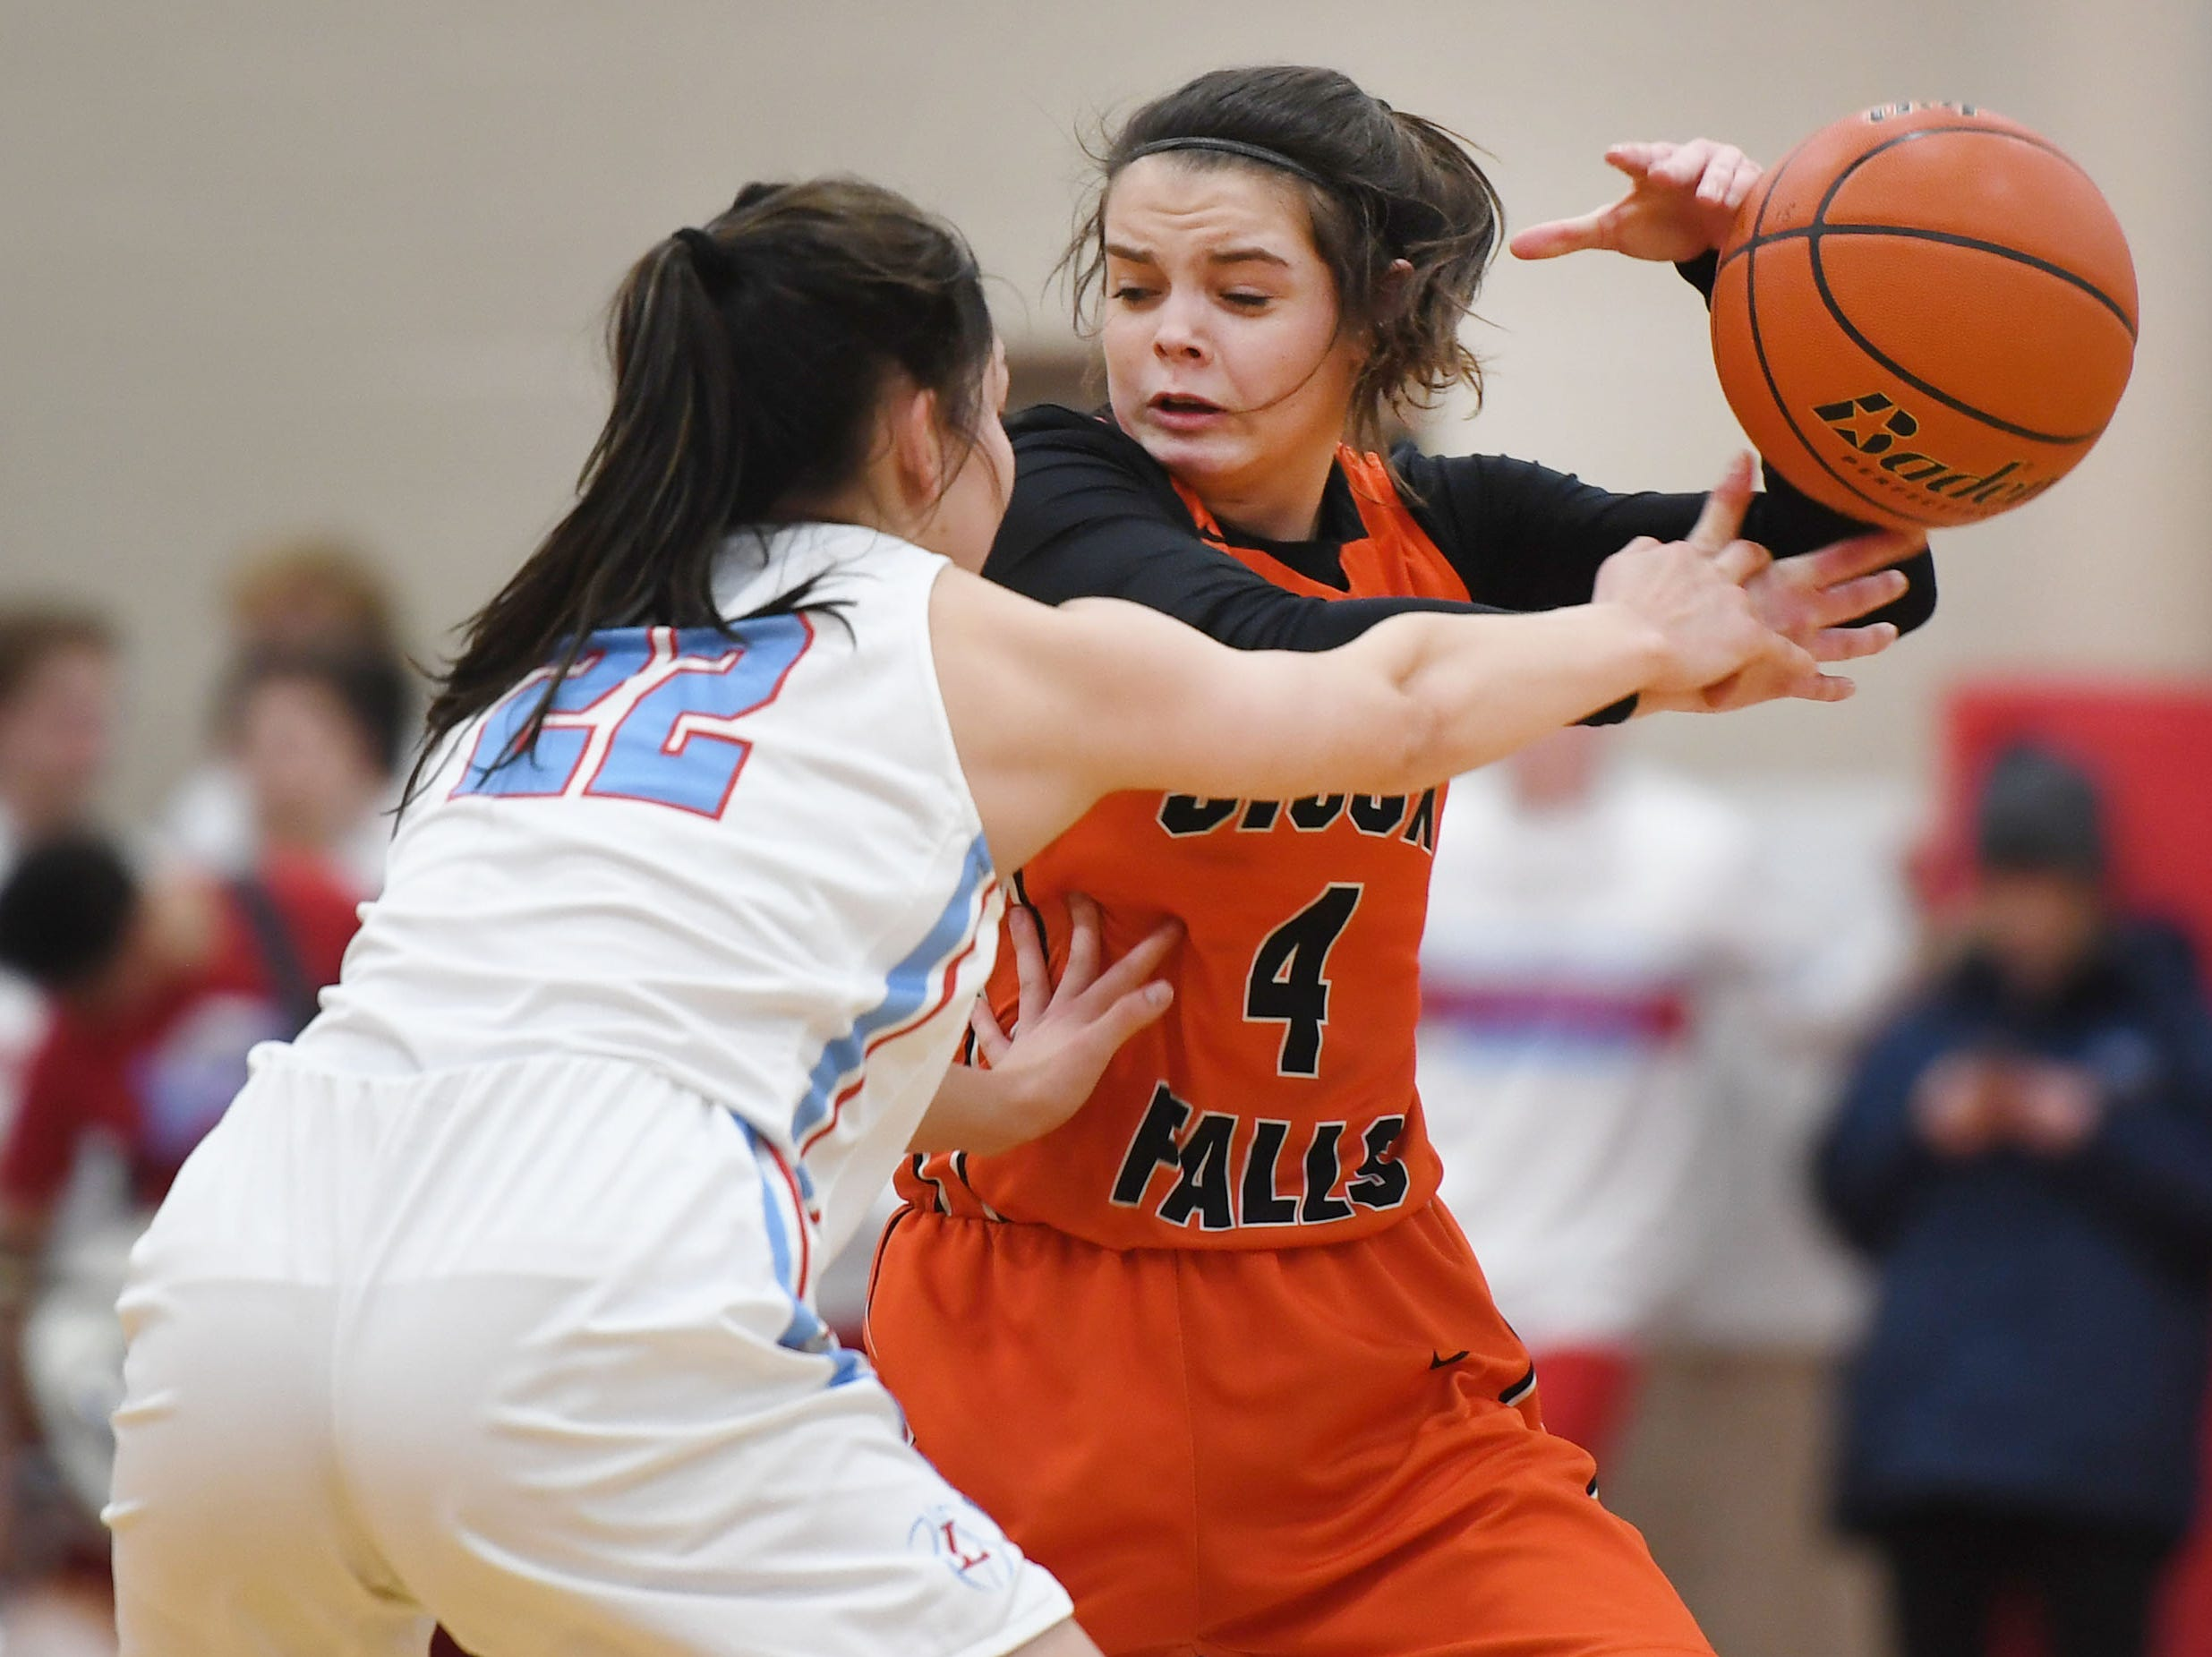 Washington's Brynn Heinert looses control of the ball against Lincoln's Brooke Brown during the game Thursday, Jan. 24, at Lincoln. Lincoln won 63-62 against Washington.